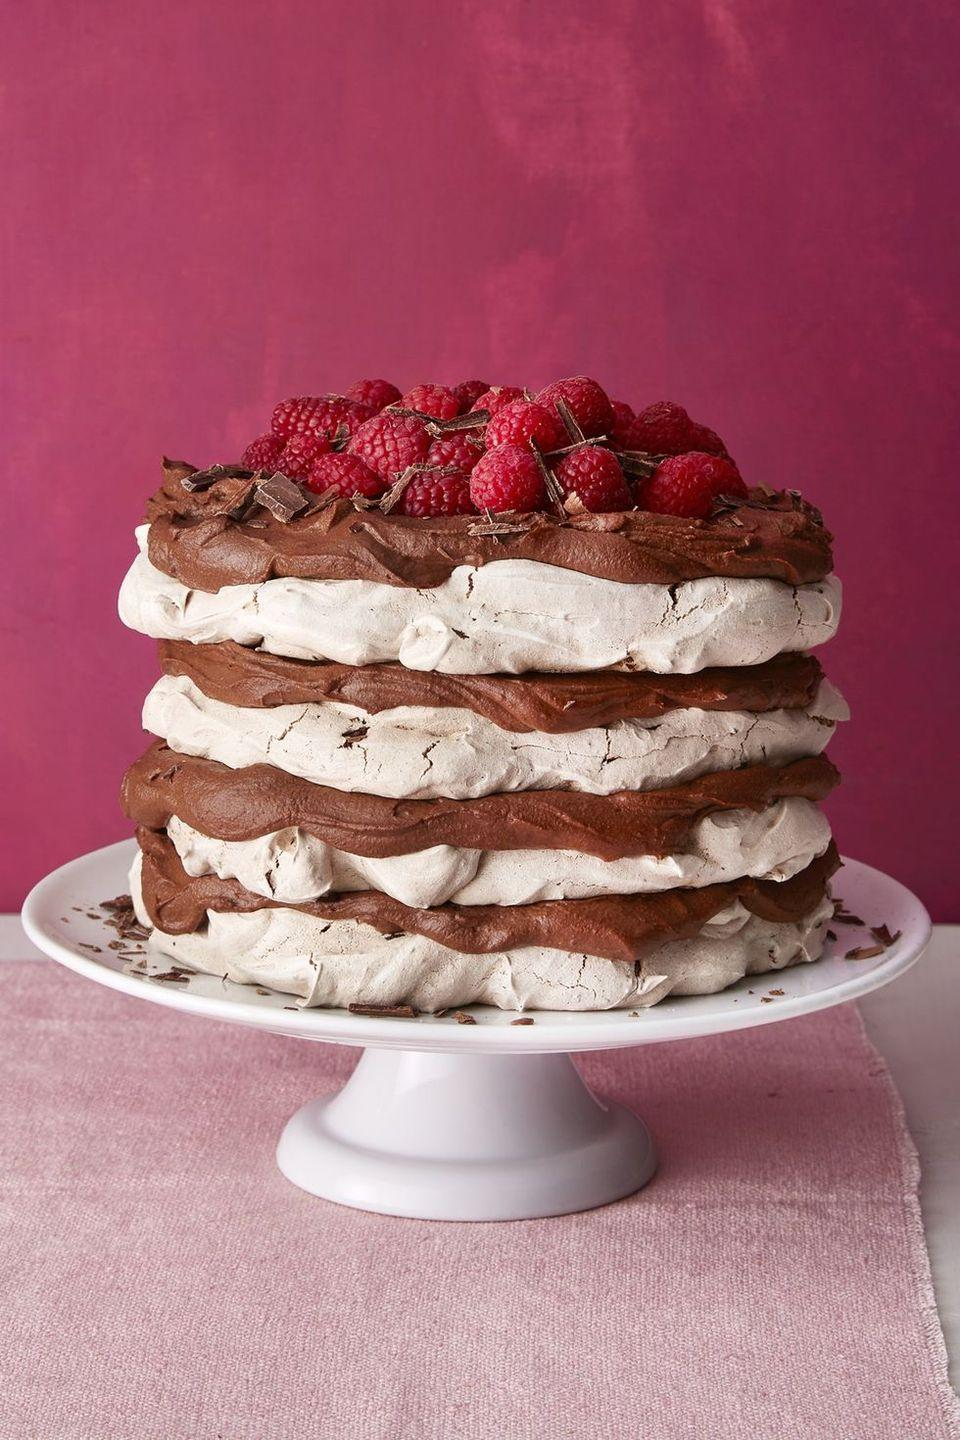 """<p>It's easier than ever to satisfy your sweet tooth during Passover, thanks to this delicious chocolatey layer cake made with meringue and mousse.<br></p><p><em><a href=""""https://www.womansday.com/food-recipes/food-drinks/a19124220/chocolate-meringue-layer-cake-recipe/"""" rel=""""nofollow noopener"""" target=""""_blank"""" data-ylk=""""slk:Get the recipe from Woman's Day »"""" class=""""link rapid-noclick-resp"""">Get the recipe from Woman's Day »</a></em> </p>"""